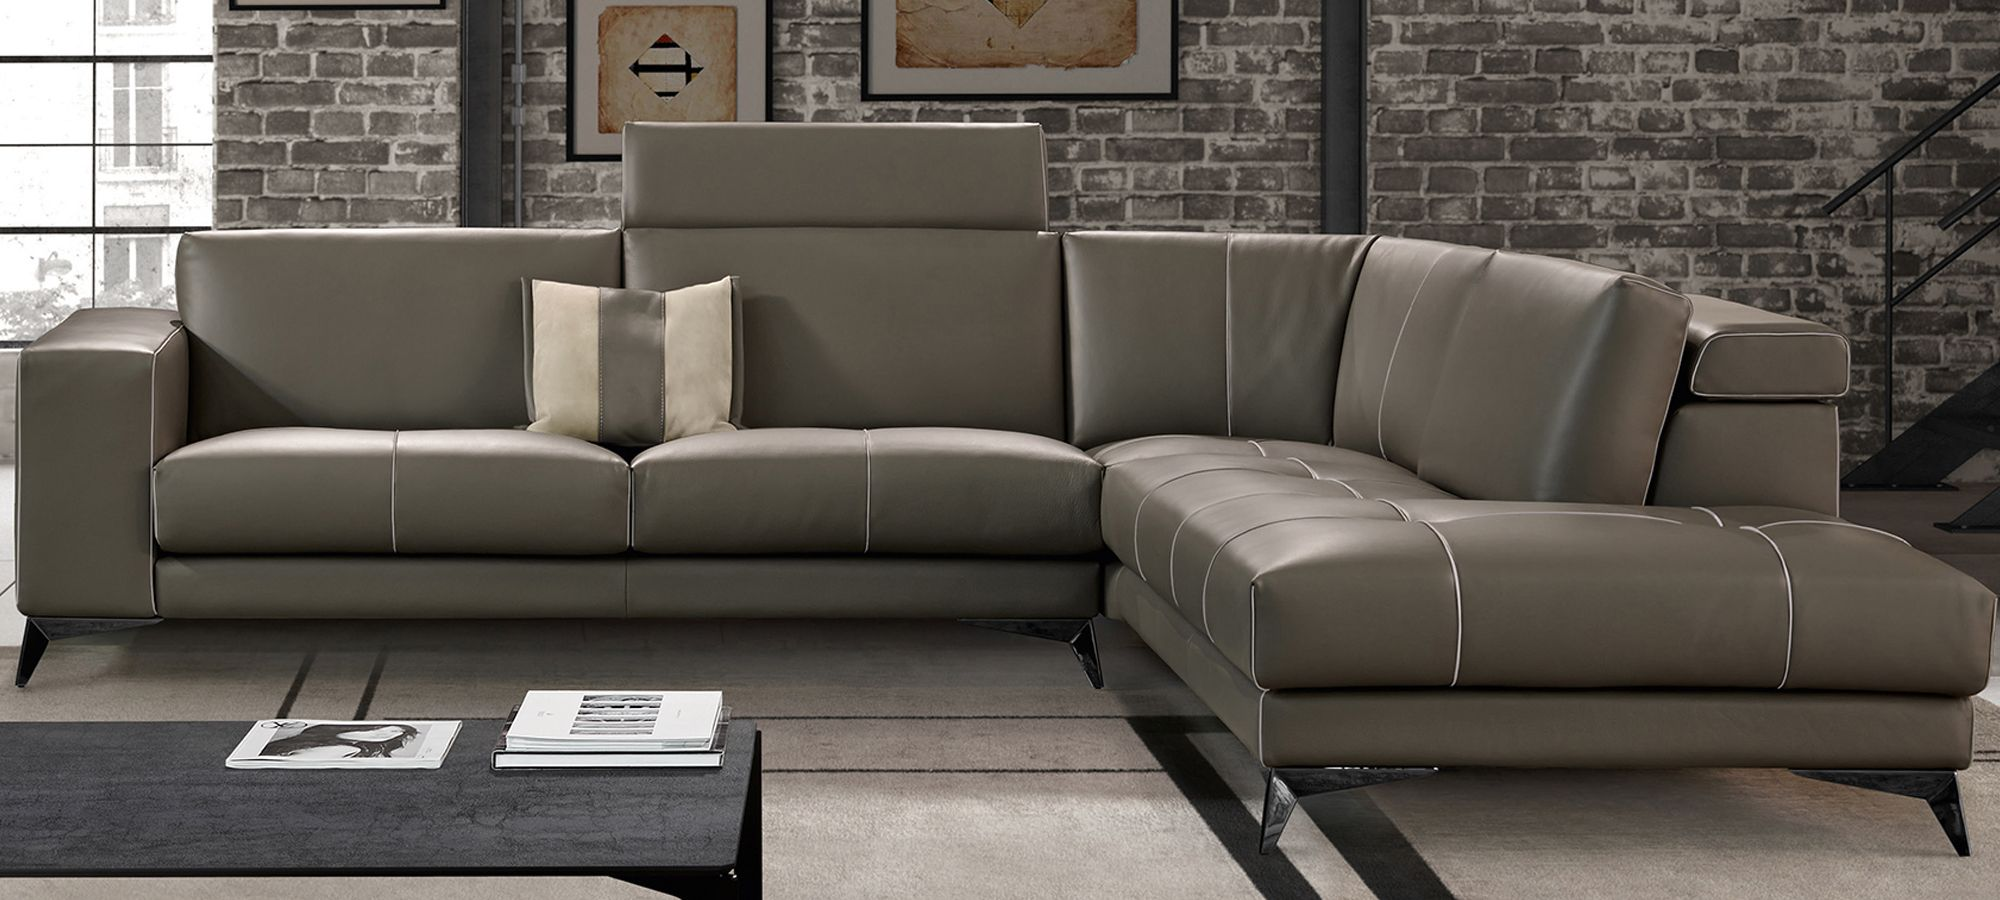 Gamma Charles Living Room Sectional Furniture Luxury Italian Furniture